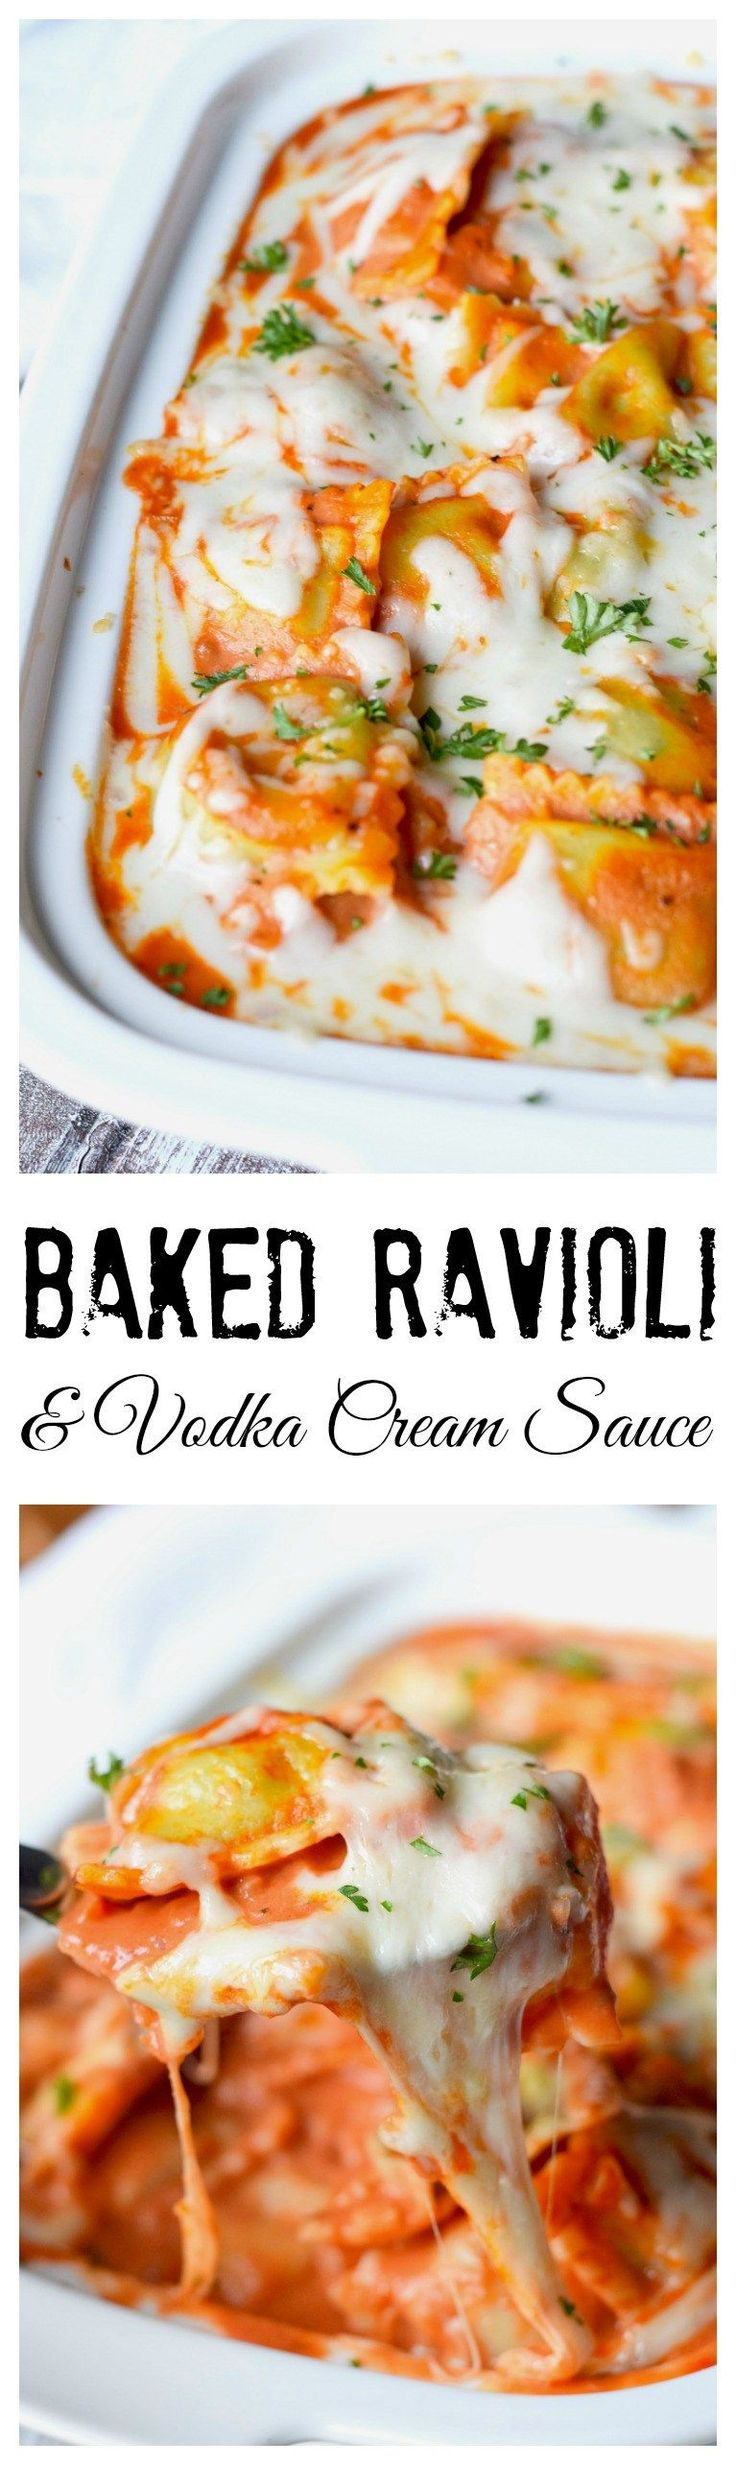 This Baked Ravioli with Vodka Cream sauce is simply a-m-a-z-i-n-g! Vodka cream sauce is one of my favorites no matter what kind of pasta its smothered over. This hearty beef ravioli dish is packed with flavor and definitely a crowd pleaser.